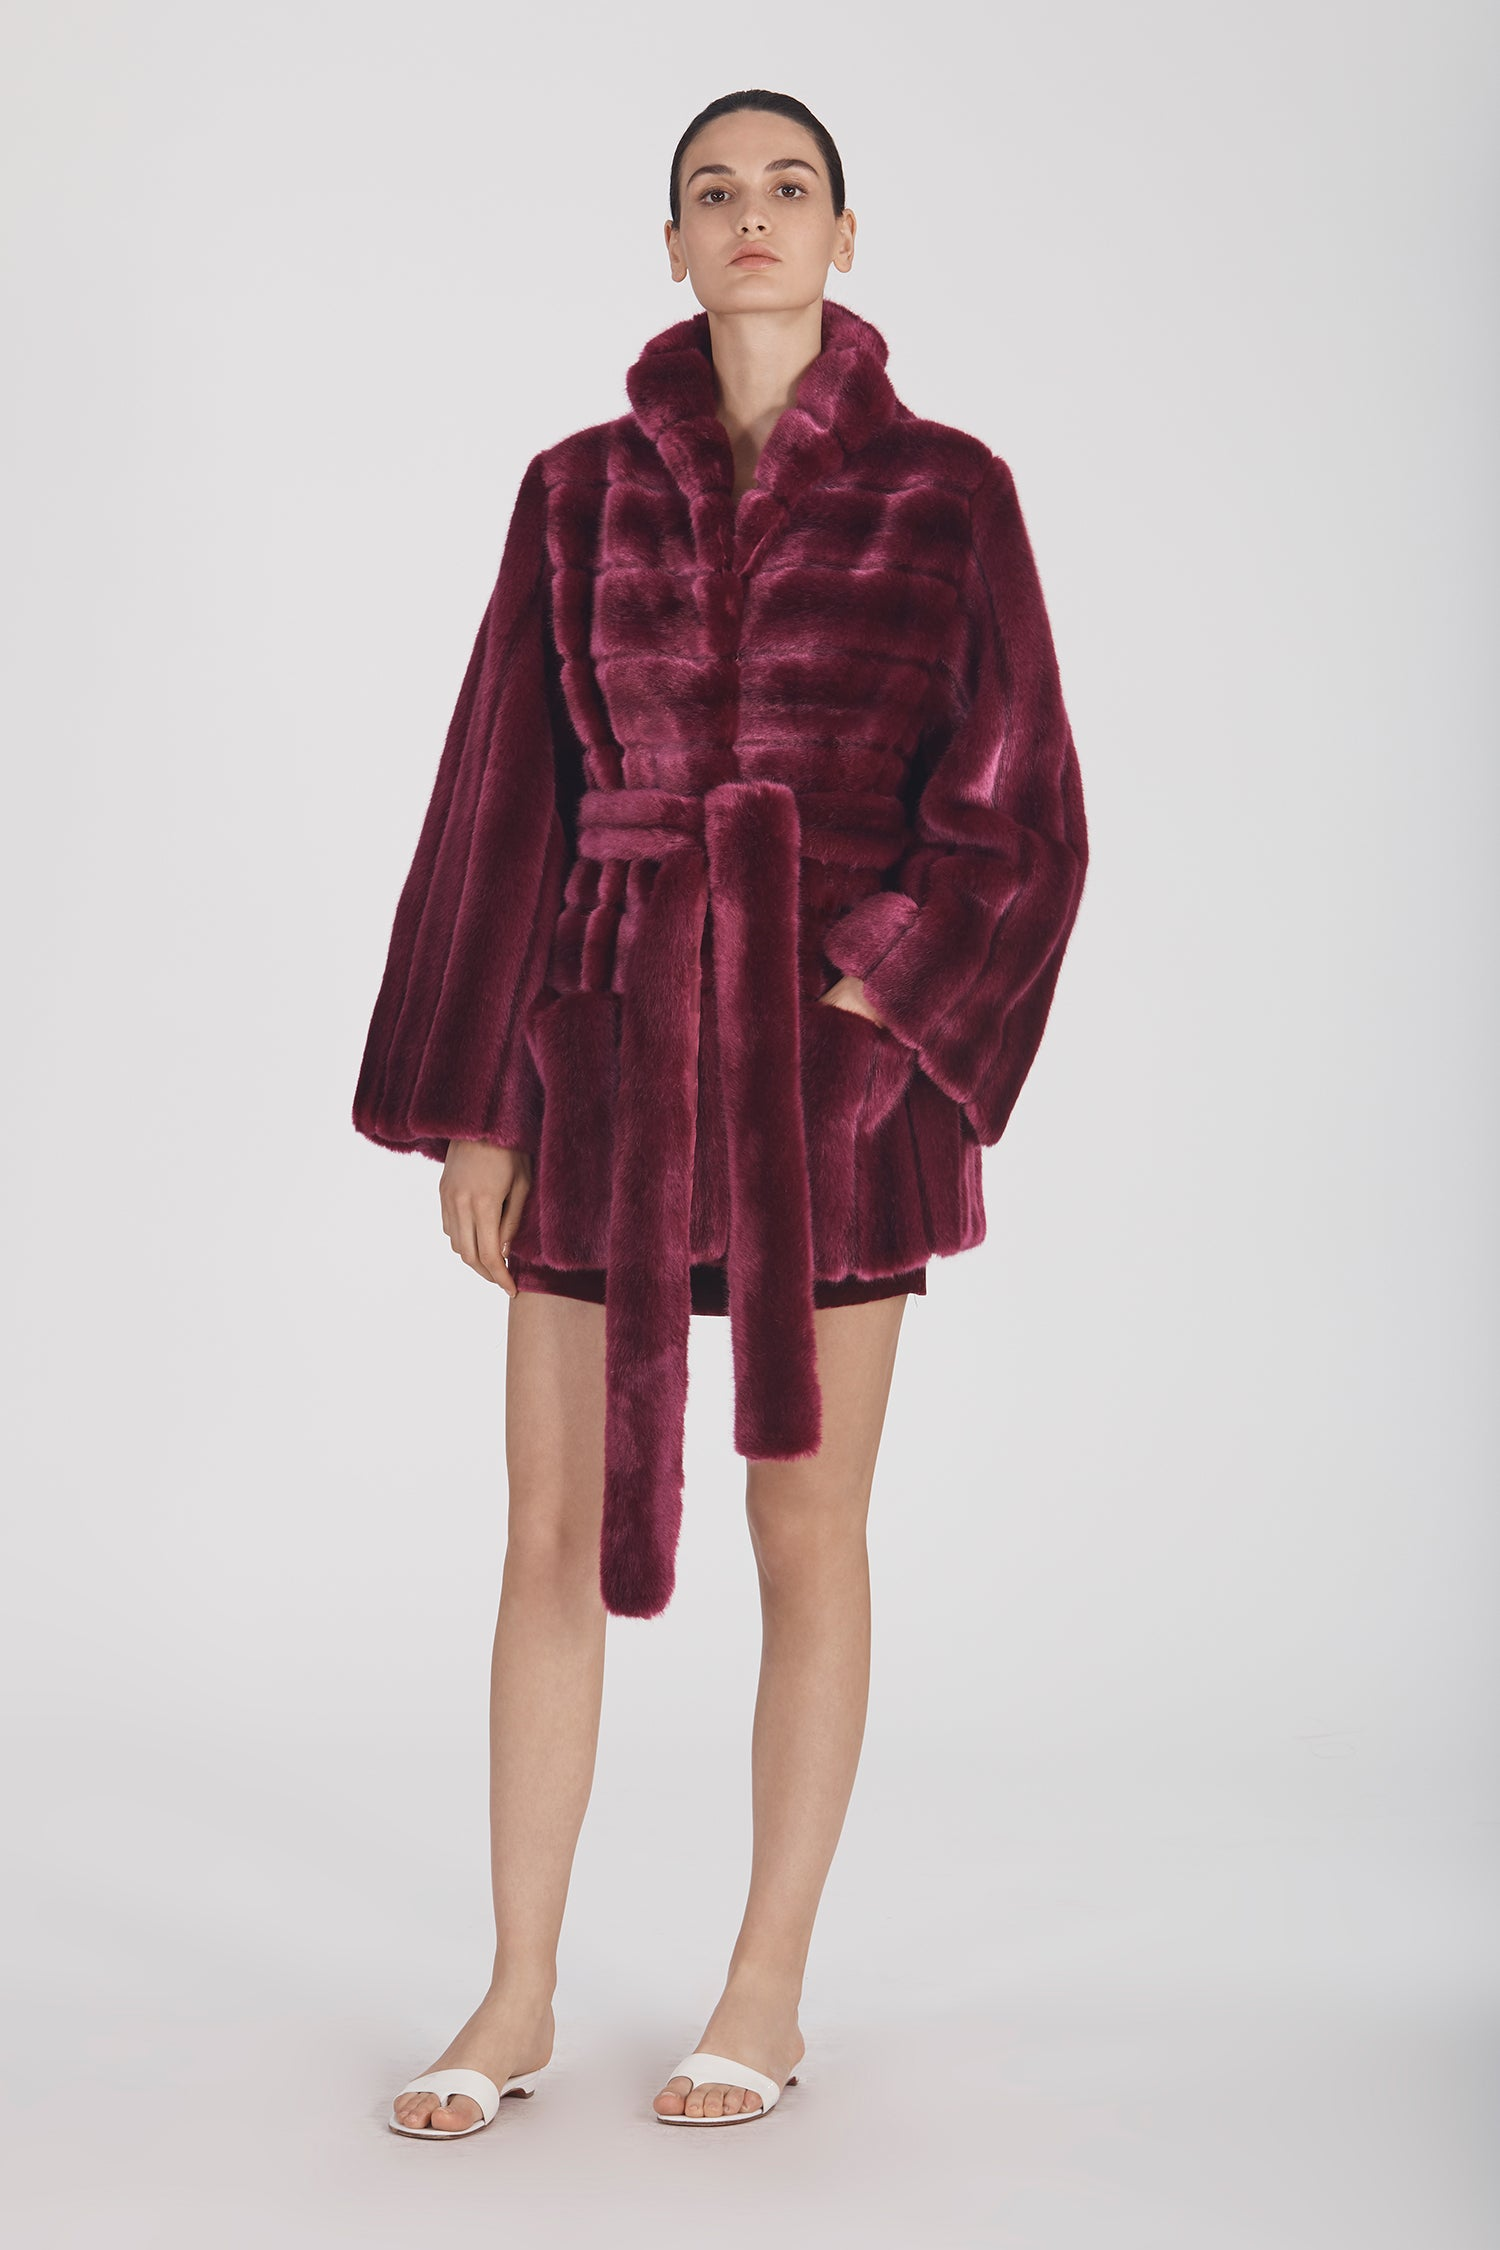 Marei1998 Yoshino Coat In Bold Raspberry Hue. Perfect For Cold Weather, This It Is Made From Plush Faux Fur, Which Feels So Warm And Comfortable. Cut In A Slight A-Lined Shape And Fully Lined, It Is Ideal For Smooth Layering. Front View.